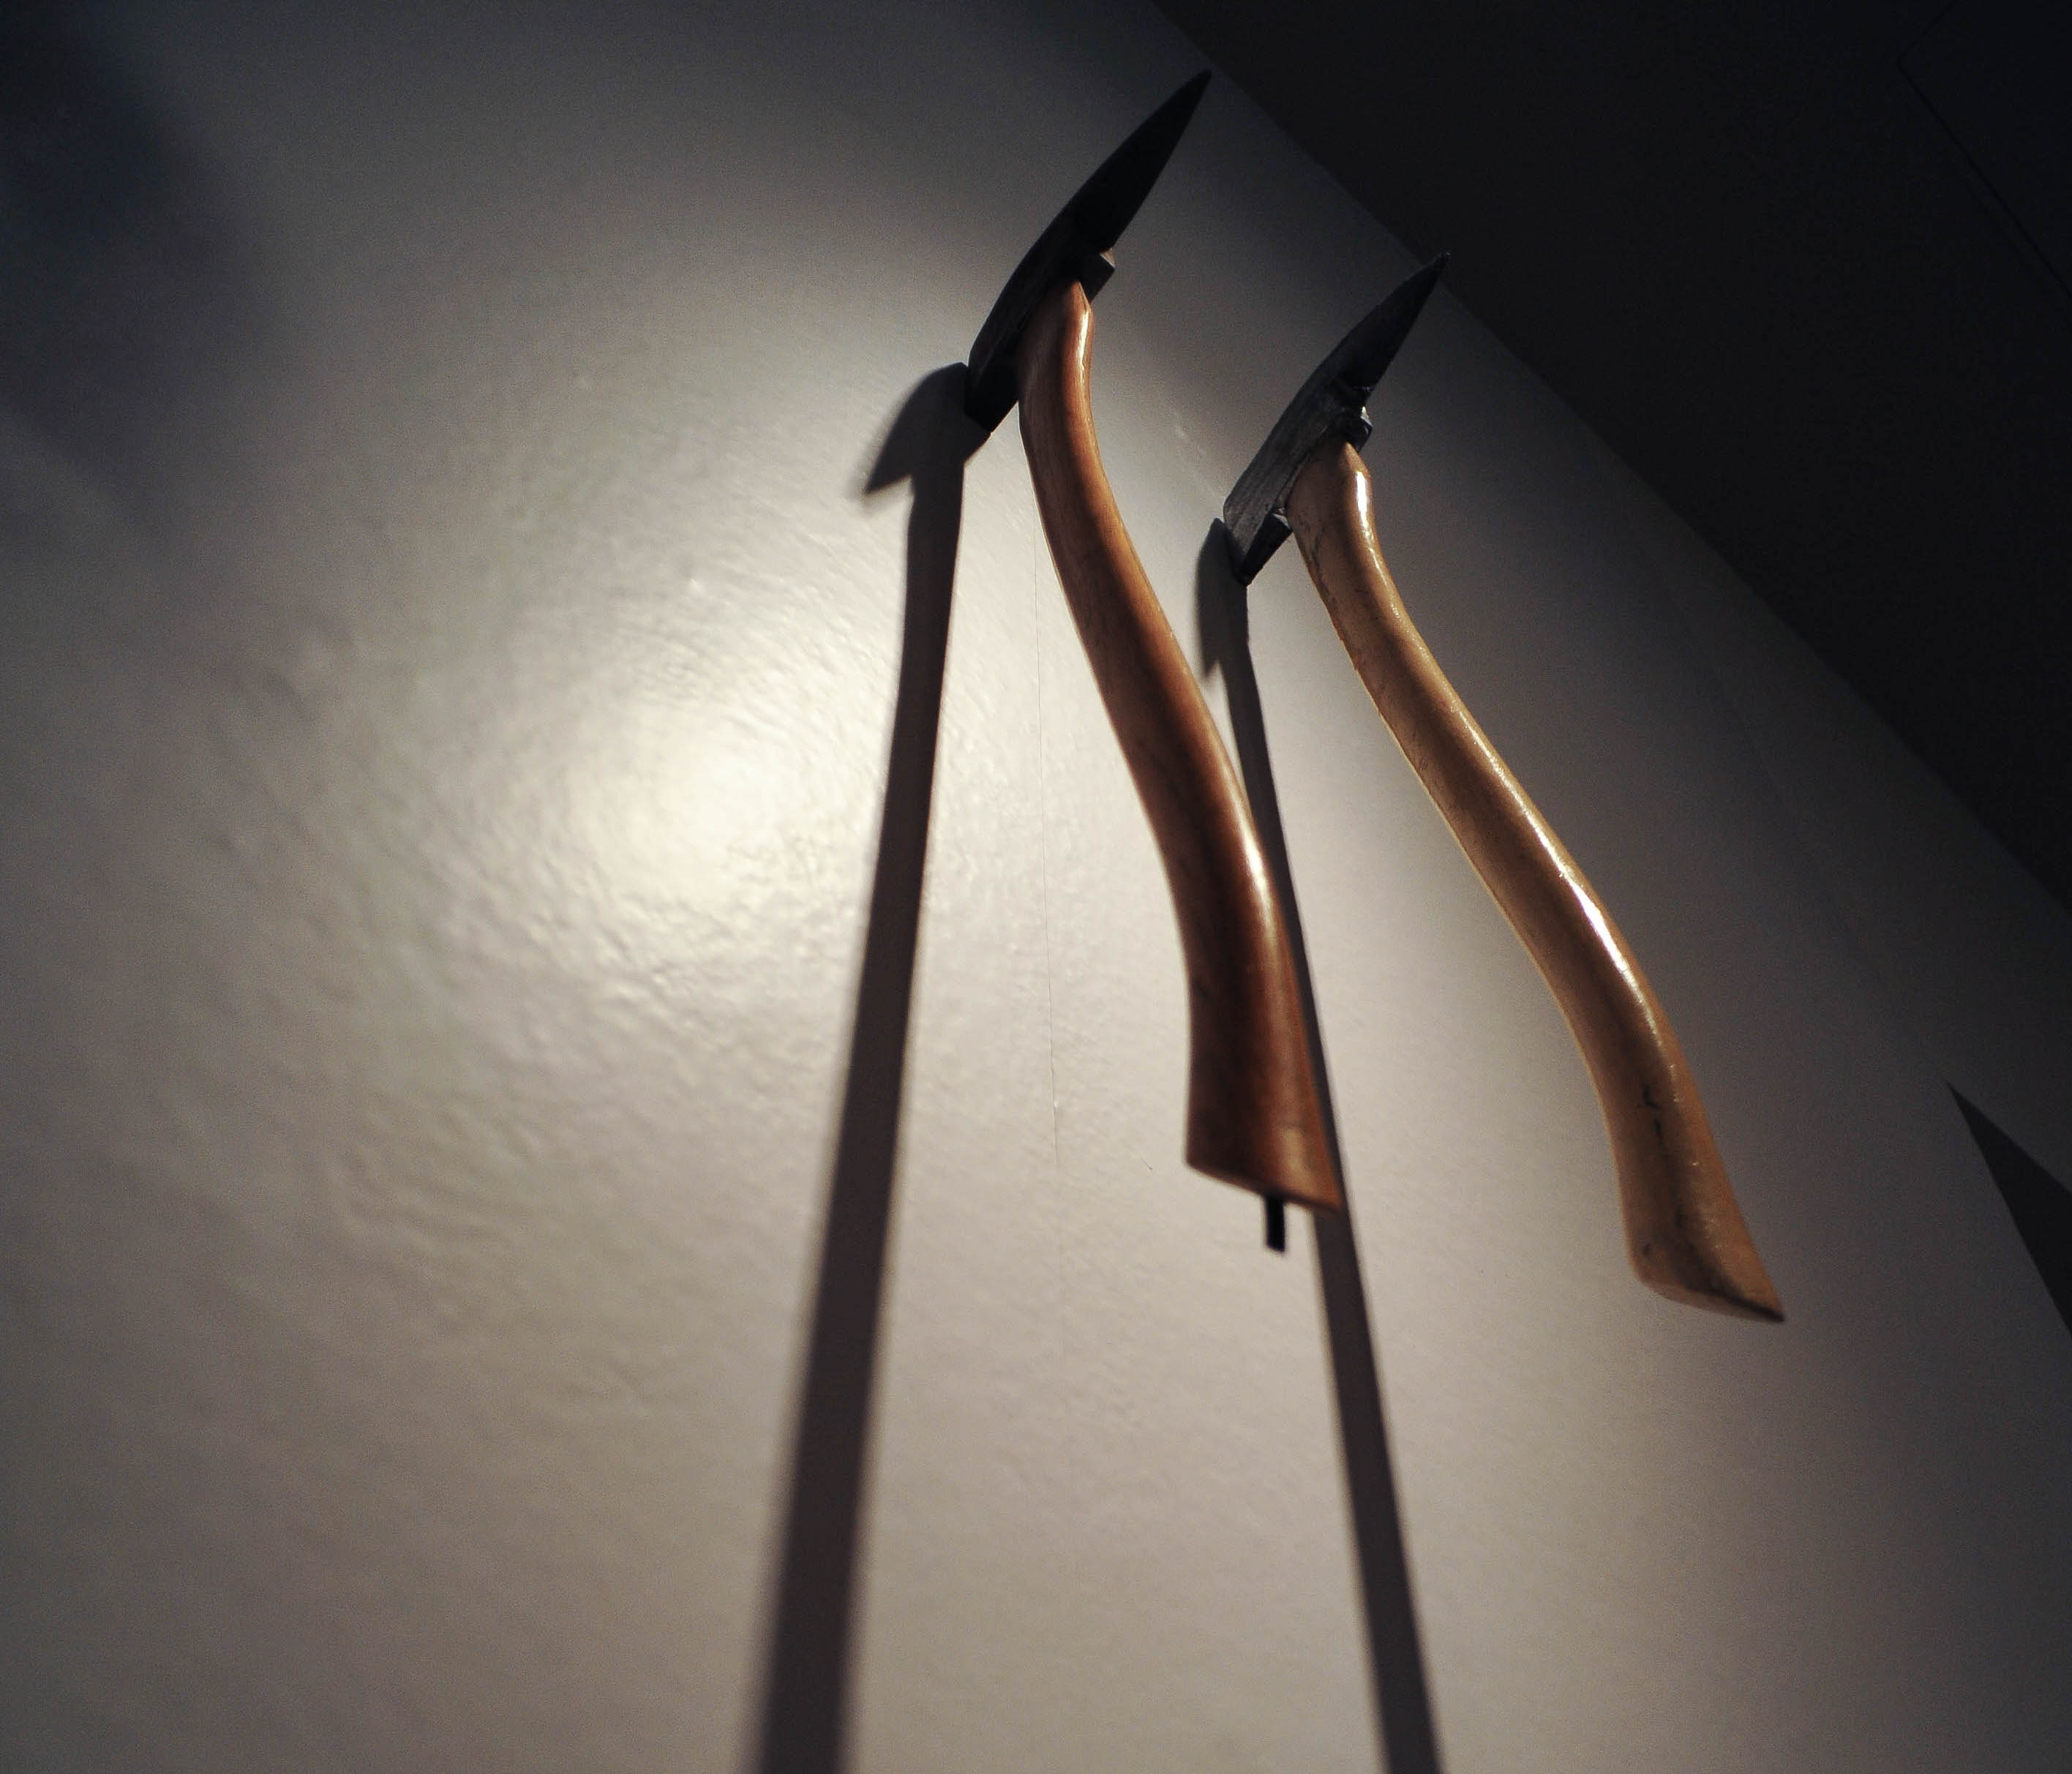 Axes from The Shining